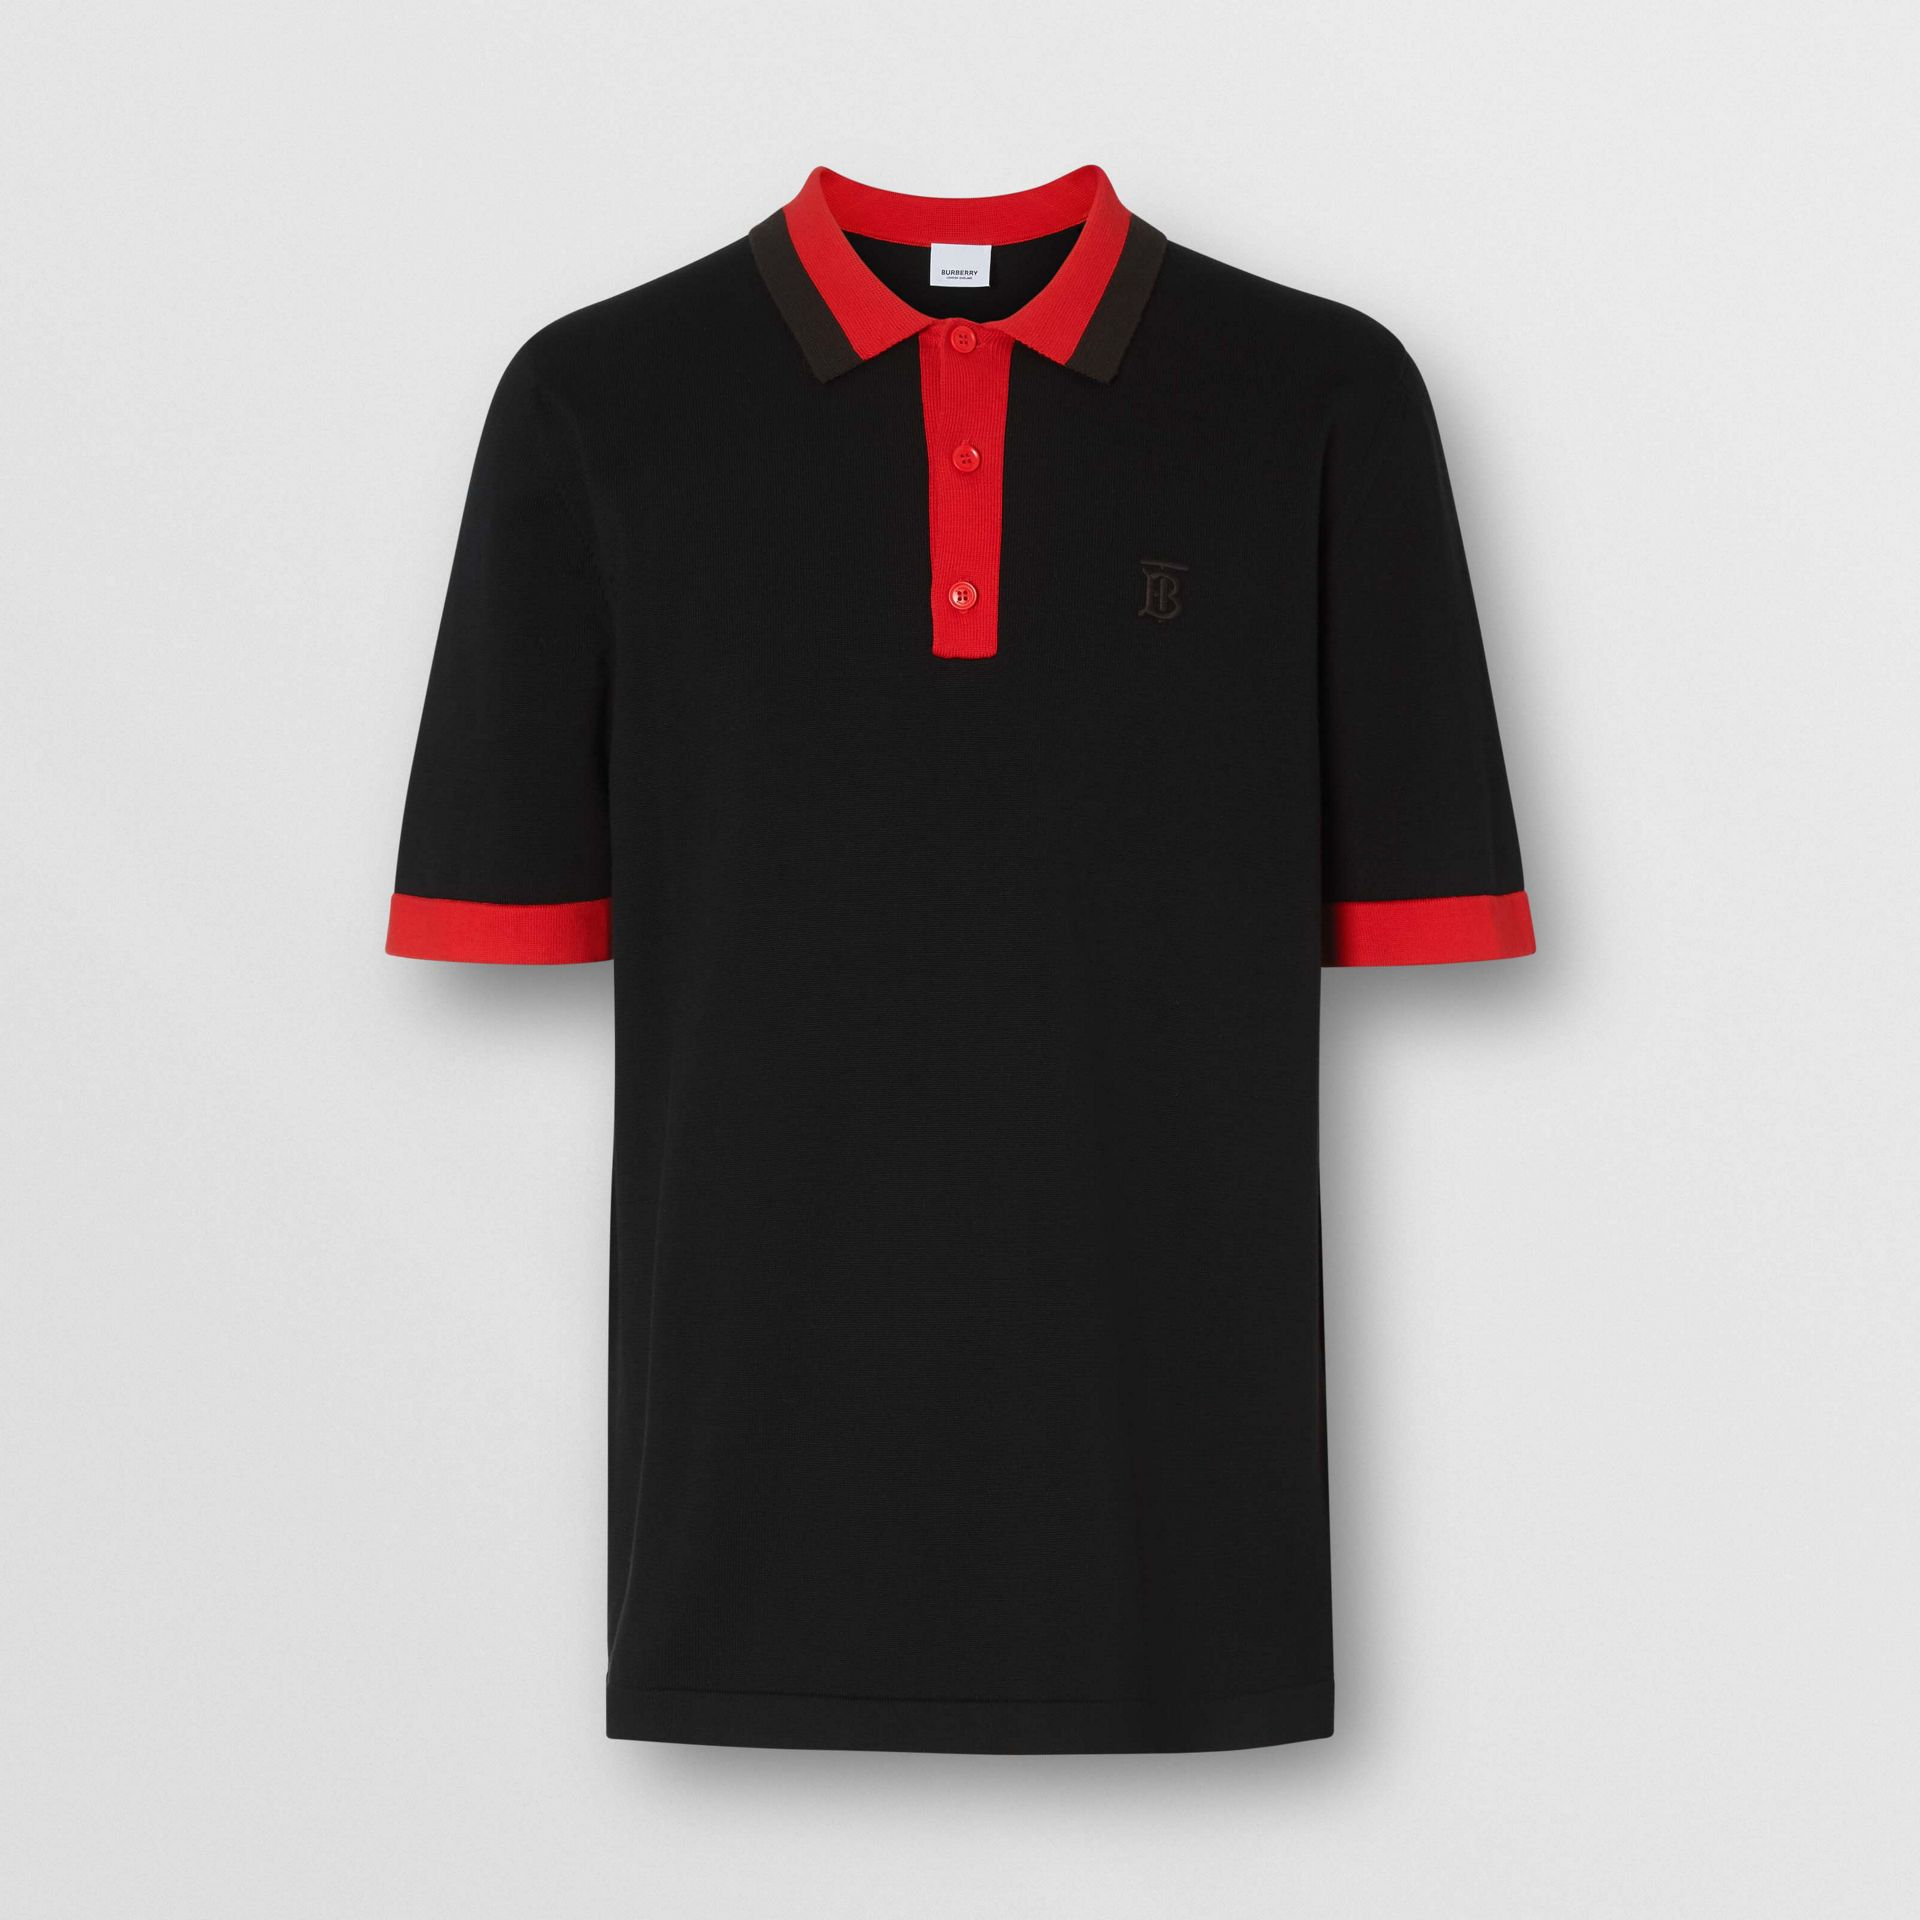 Monogram Motif Tipped Cotton Polo Shirt in Black - Men | Burberry - gallery image 3